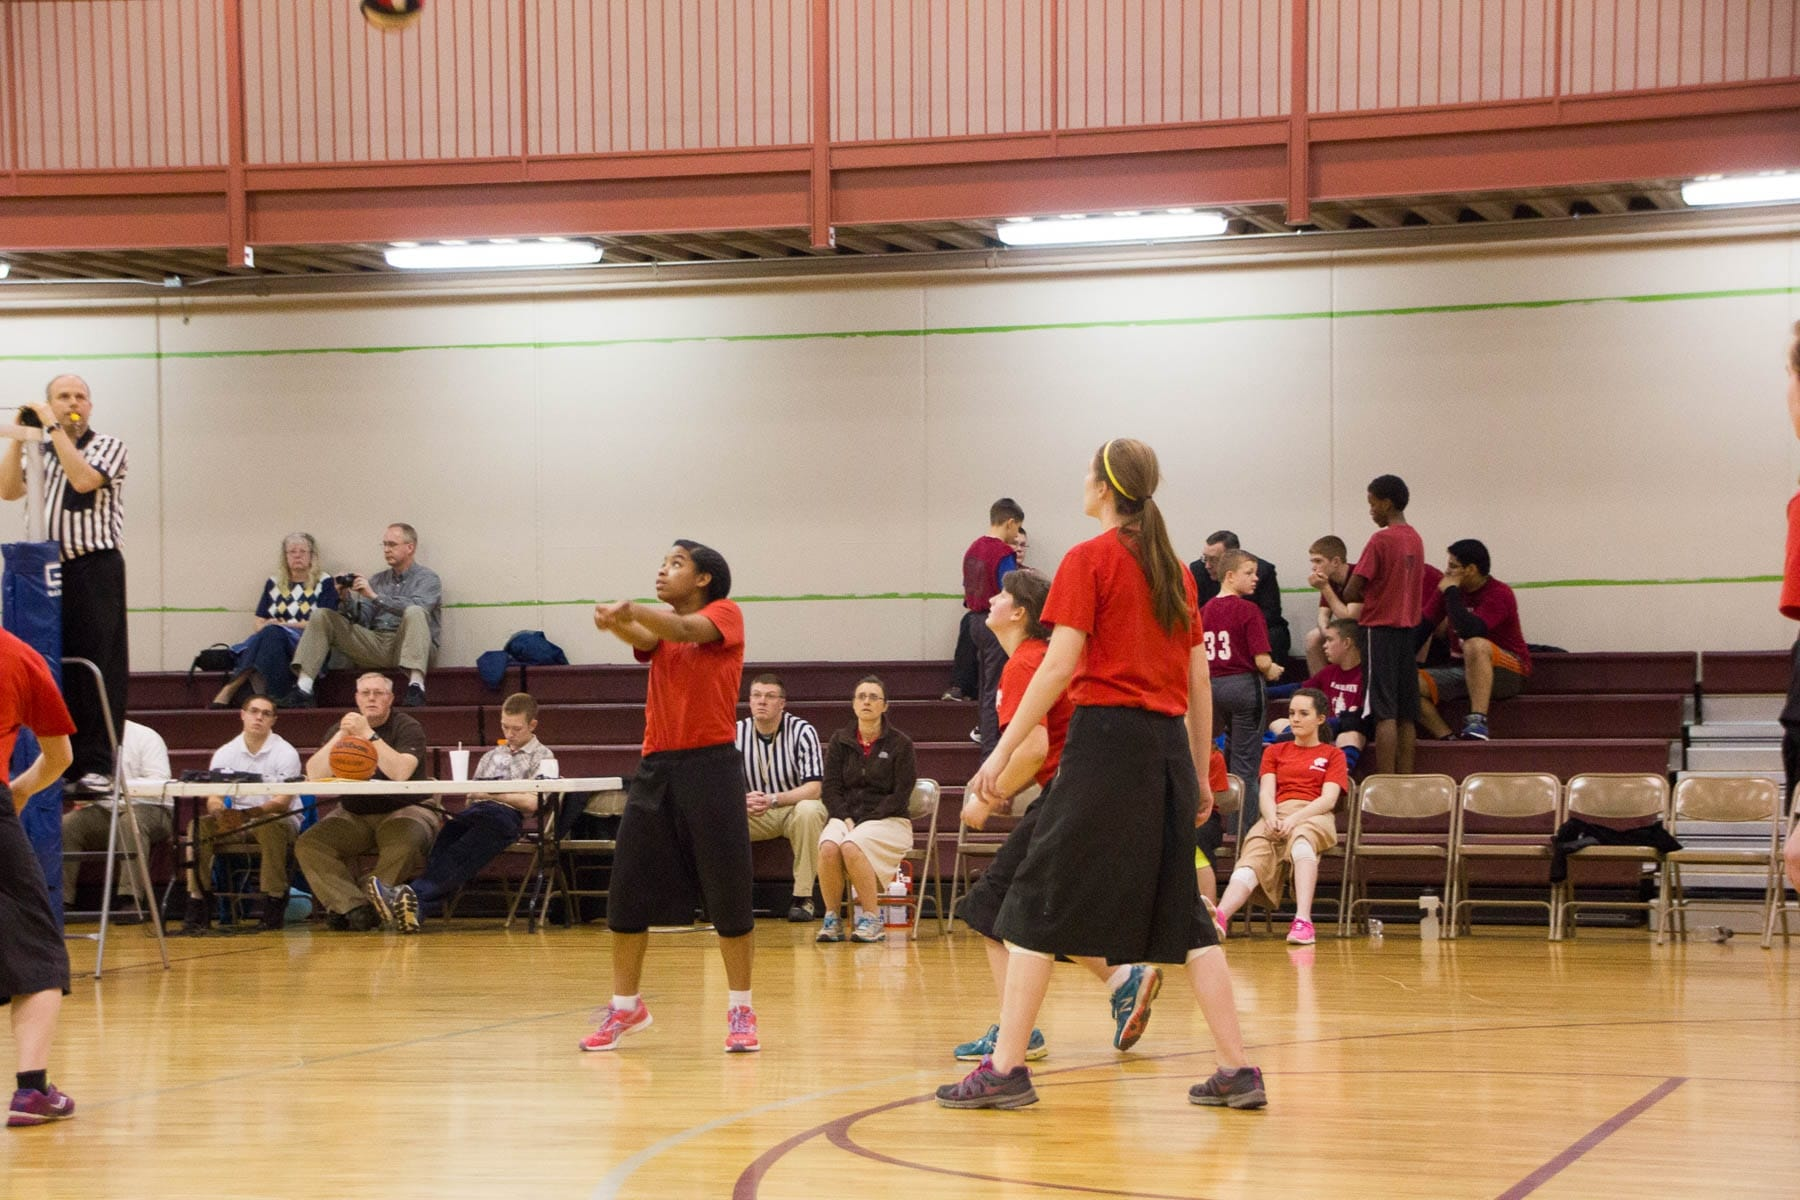 Fairhaven Baptist Academy Volleyball Basketball Tournament 2016 (23 of 40)